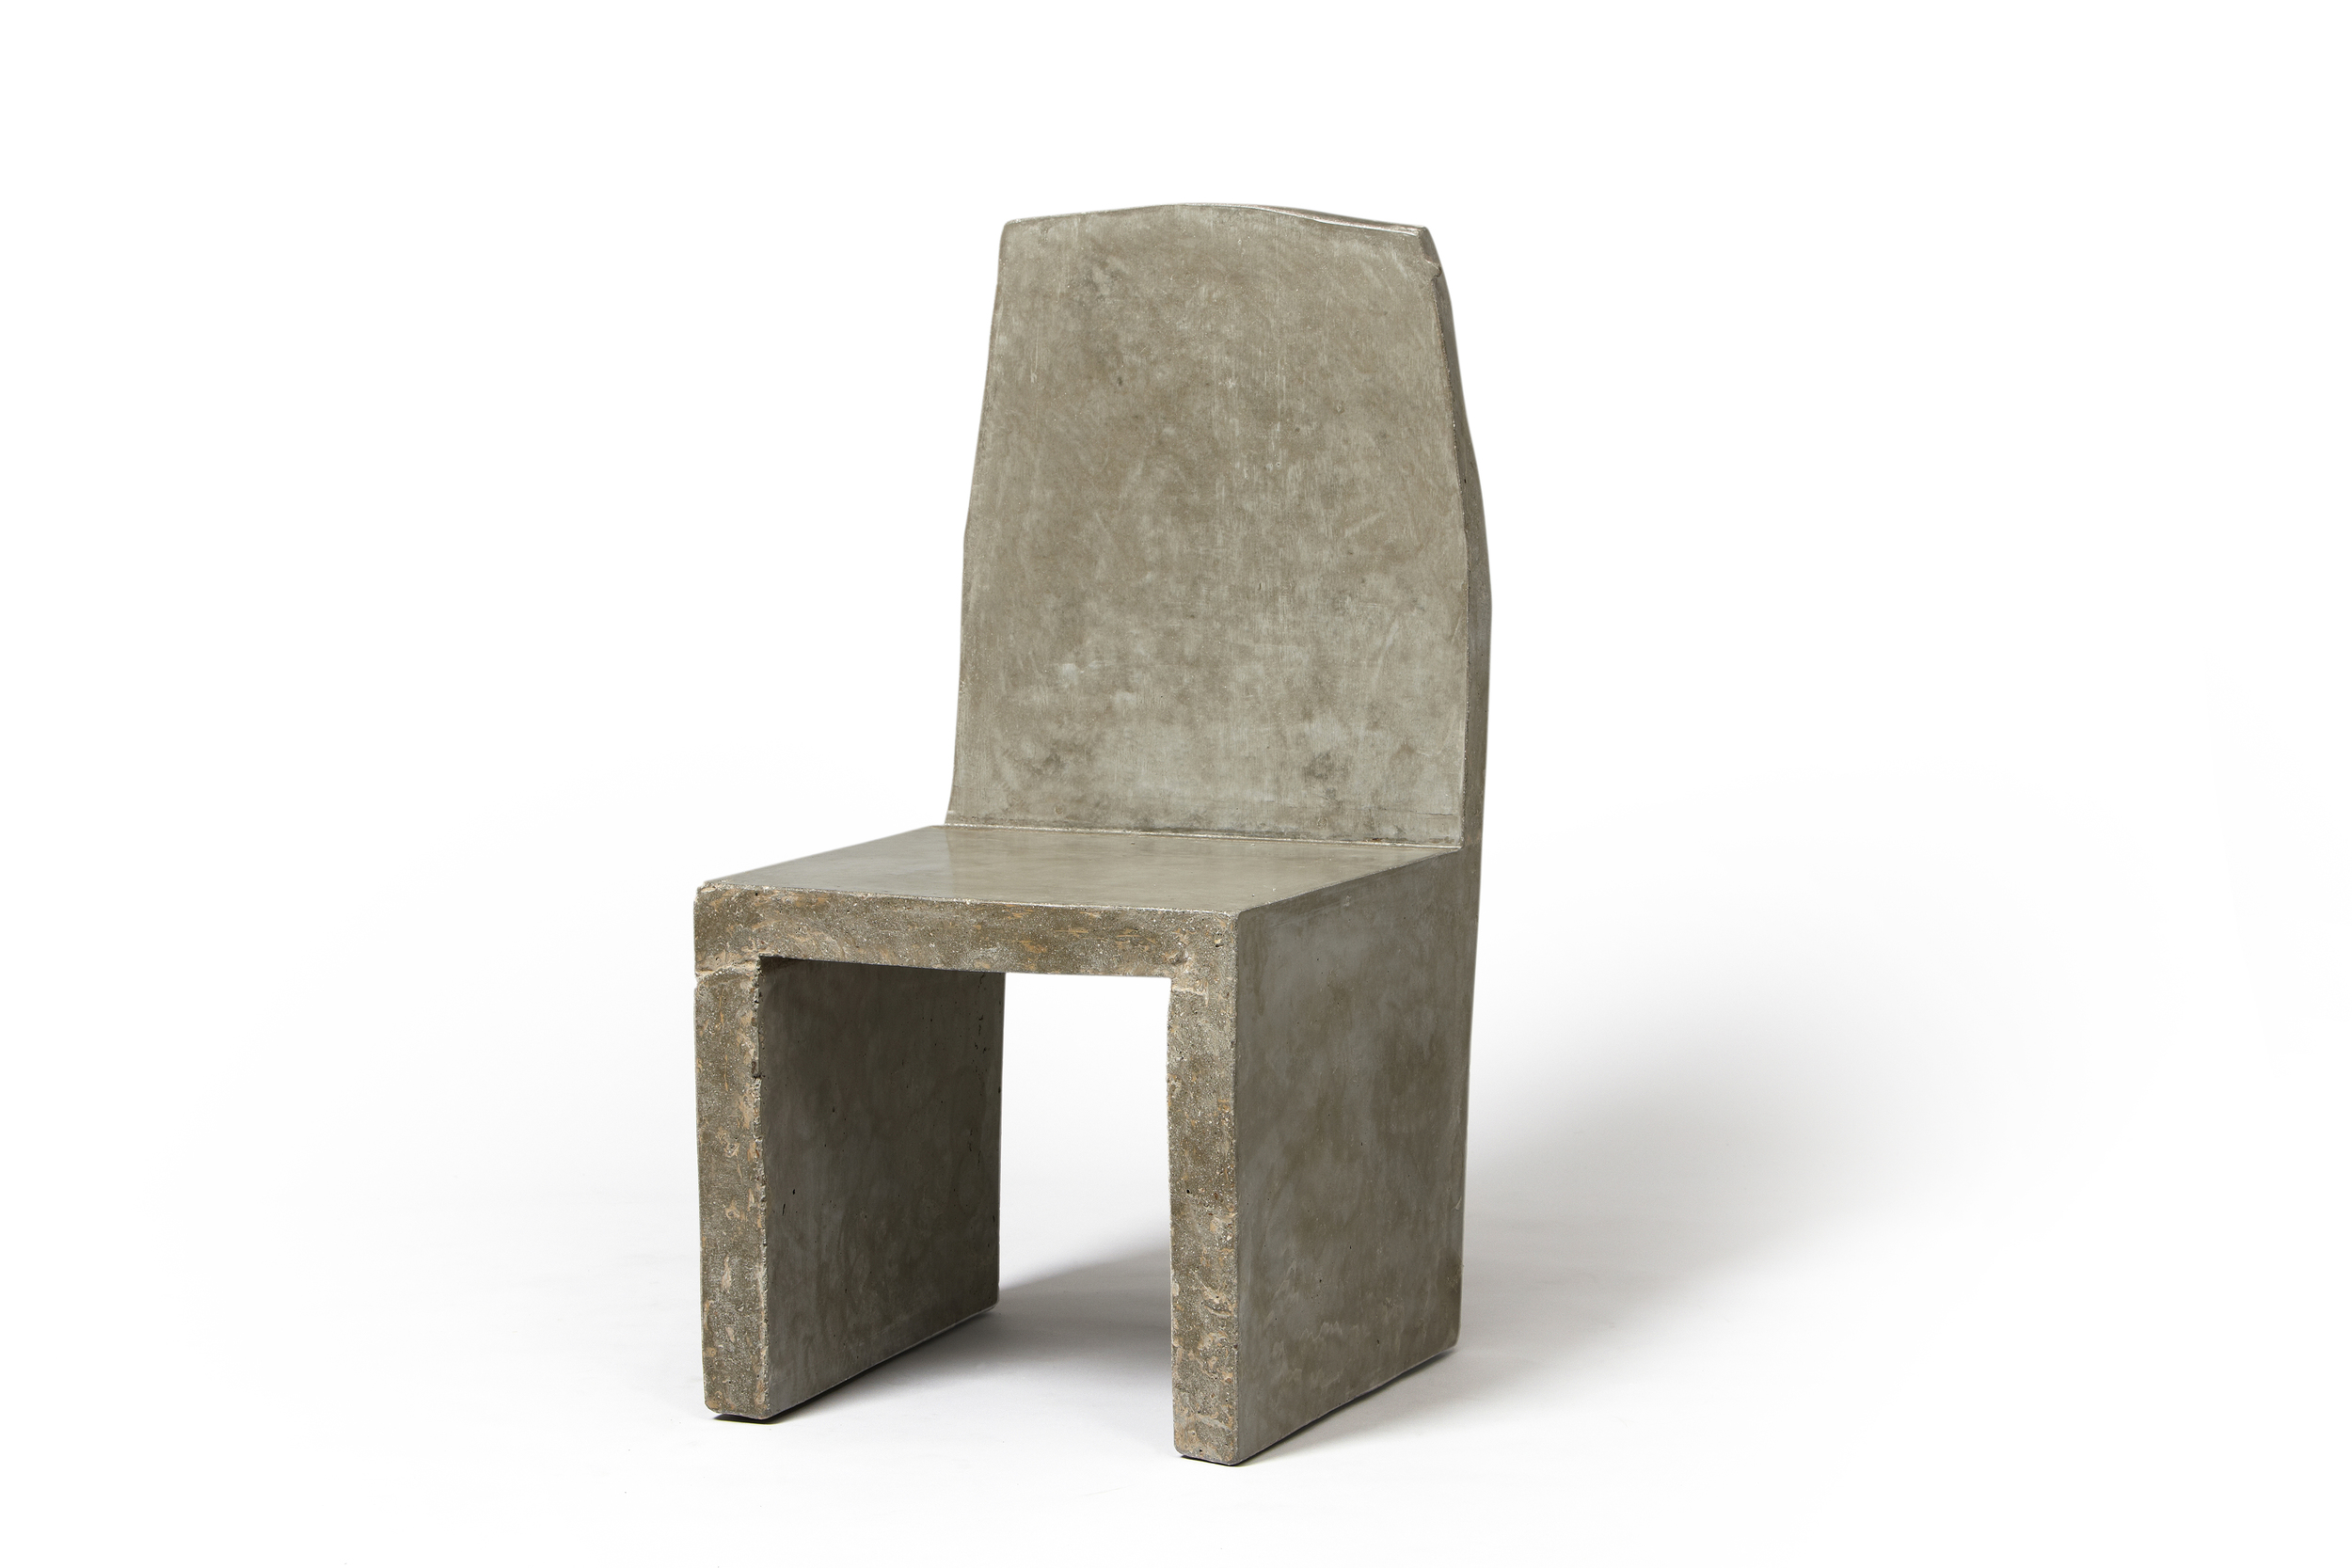 Lee Hun-Chung, Concrete Chair, 2010, Concrete, 50 x 49 x 99 cm (4).jpg